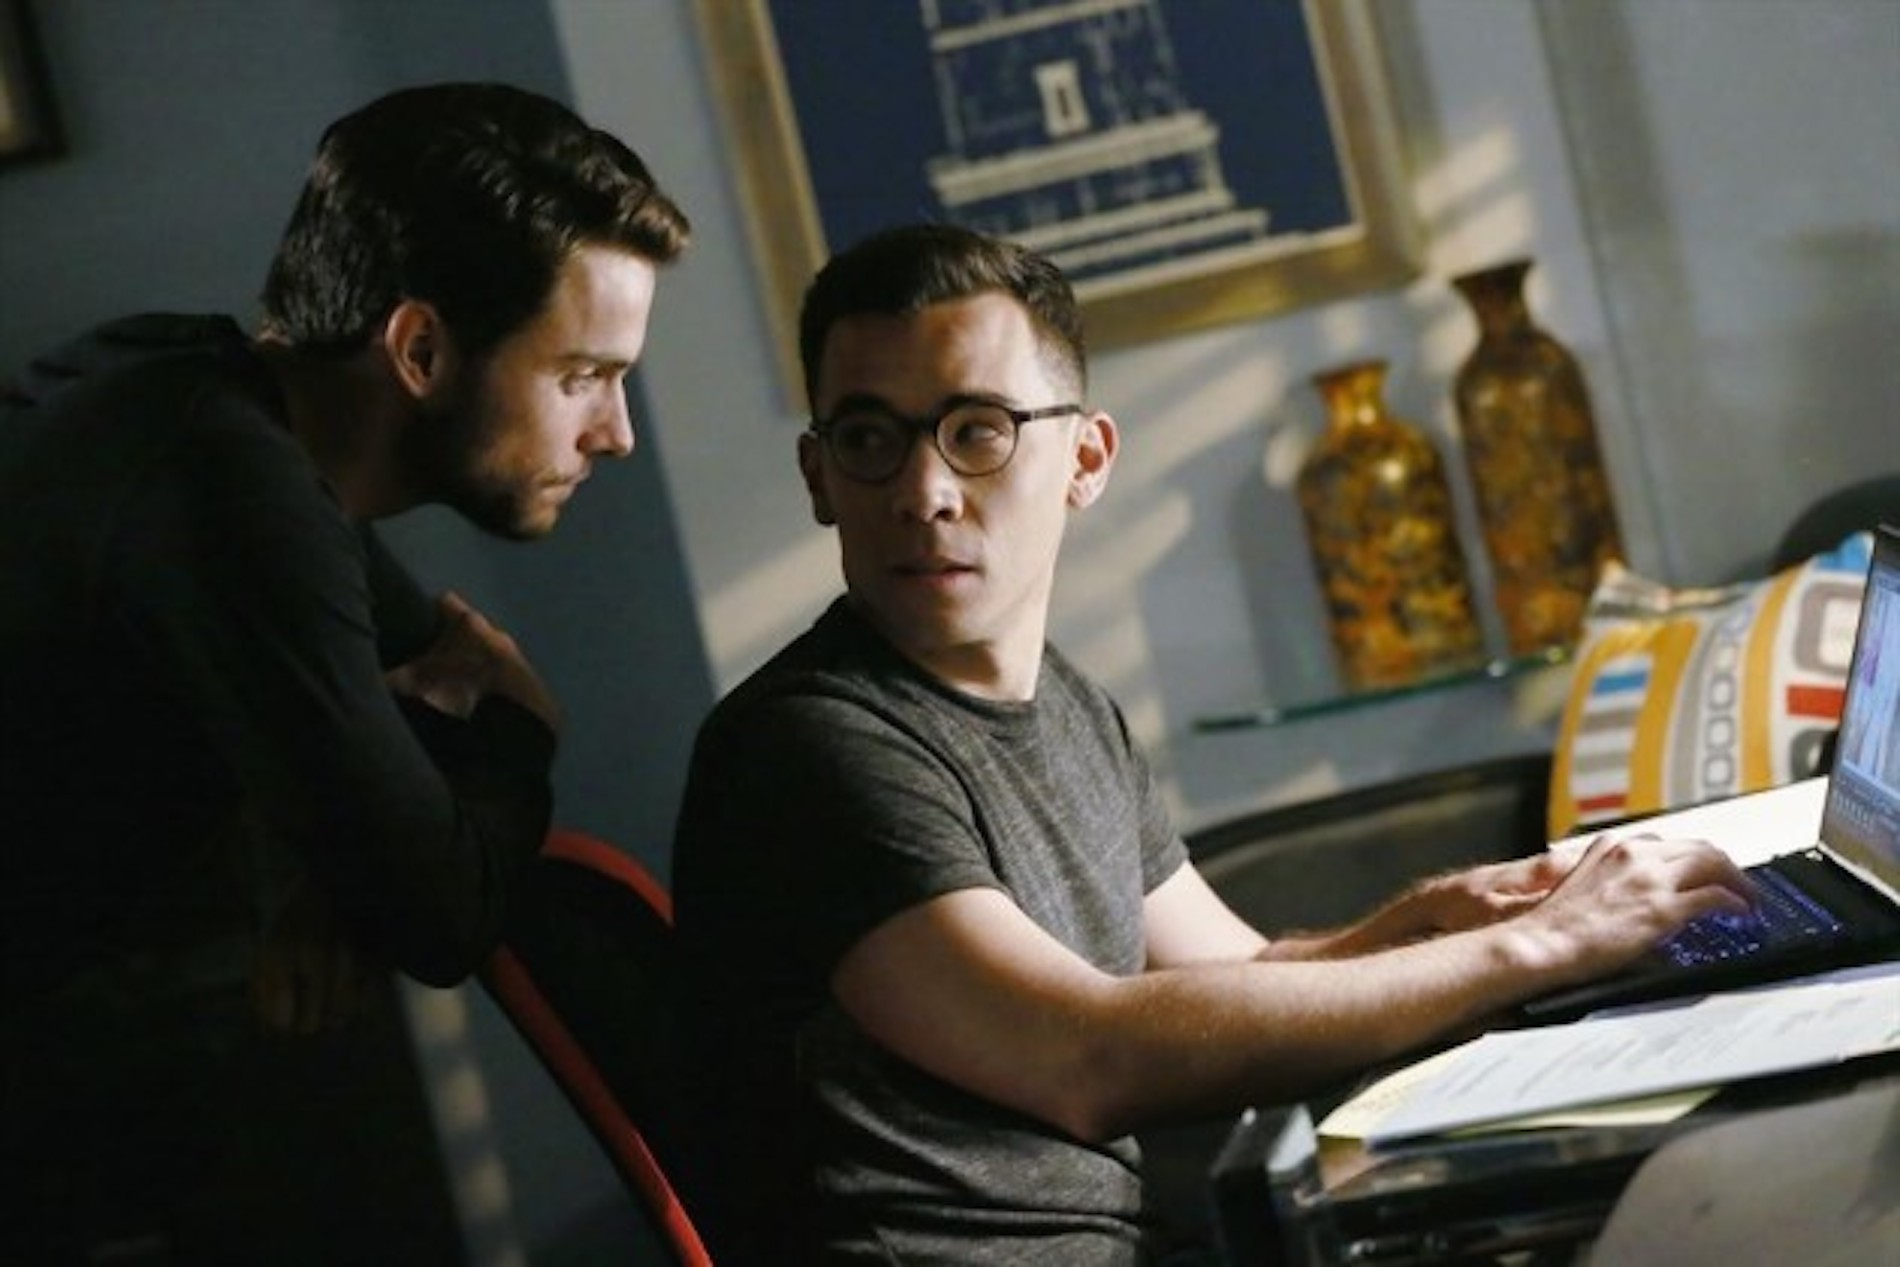 How to Get Away with Murder: Conrad Ricamora to Be Series Regular in ...